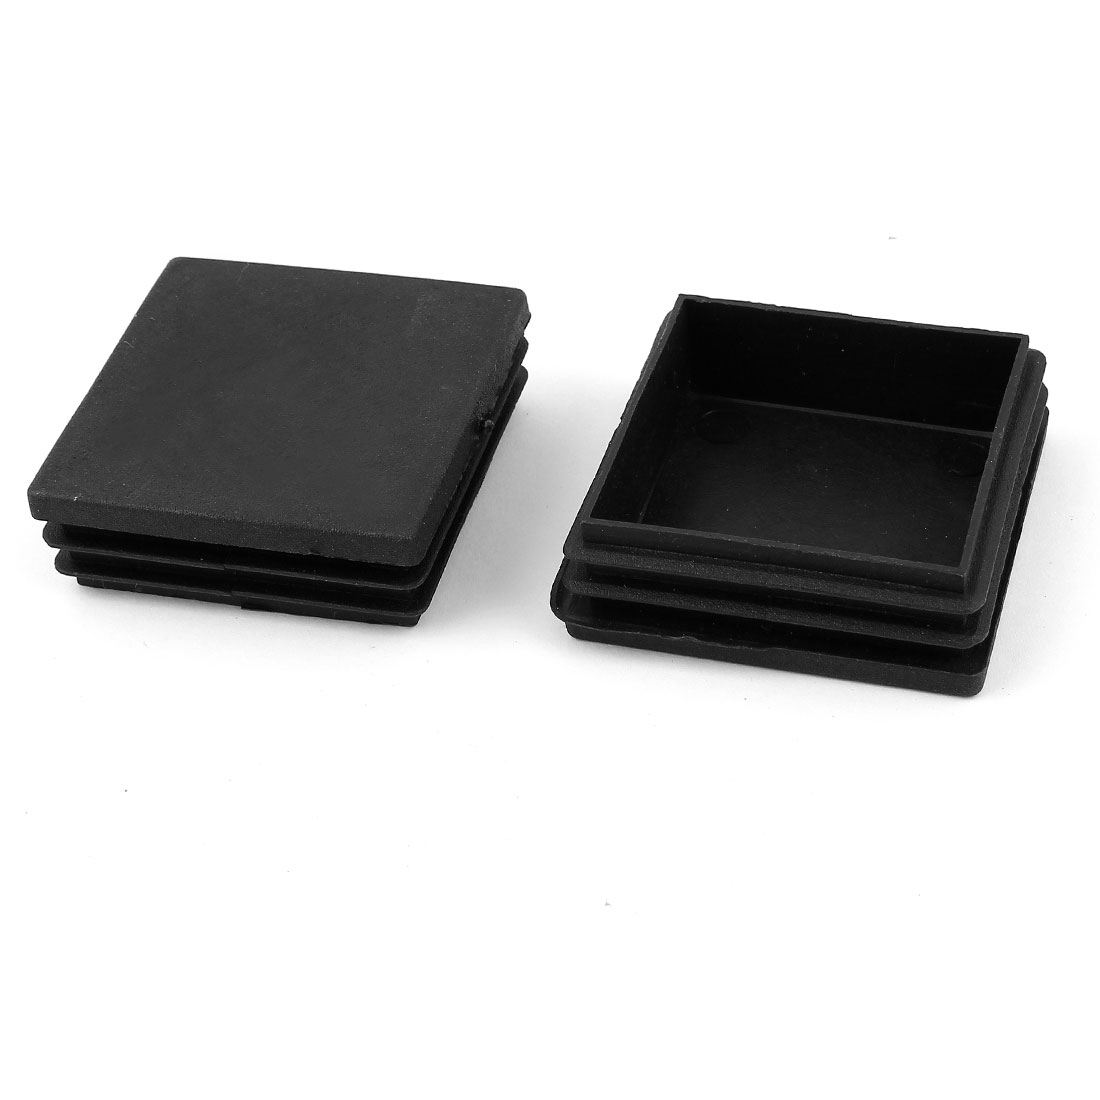 2 Pieces Black Plastic Square Blanking End Caps Tubing Tube Cover Inserts 60mm x 60mm